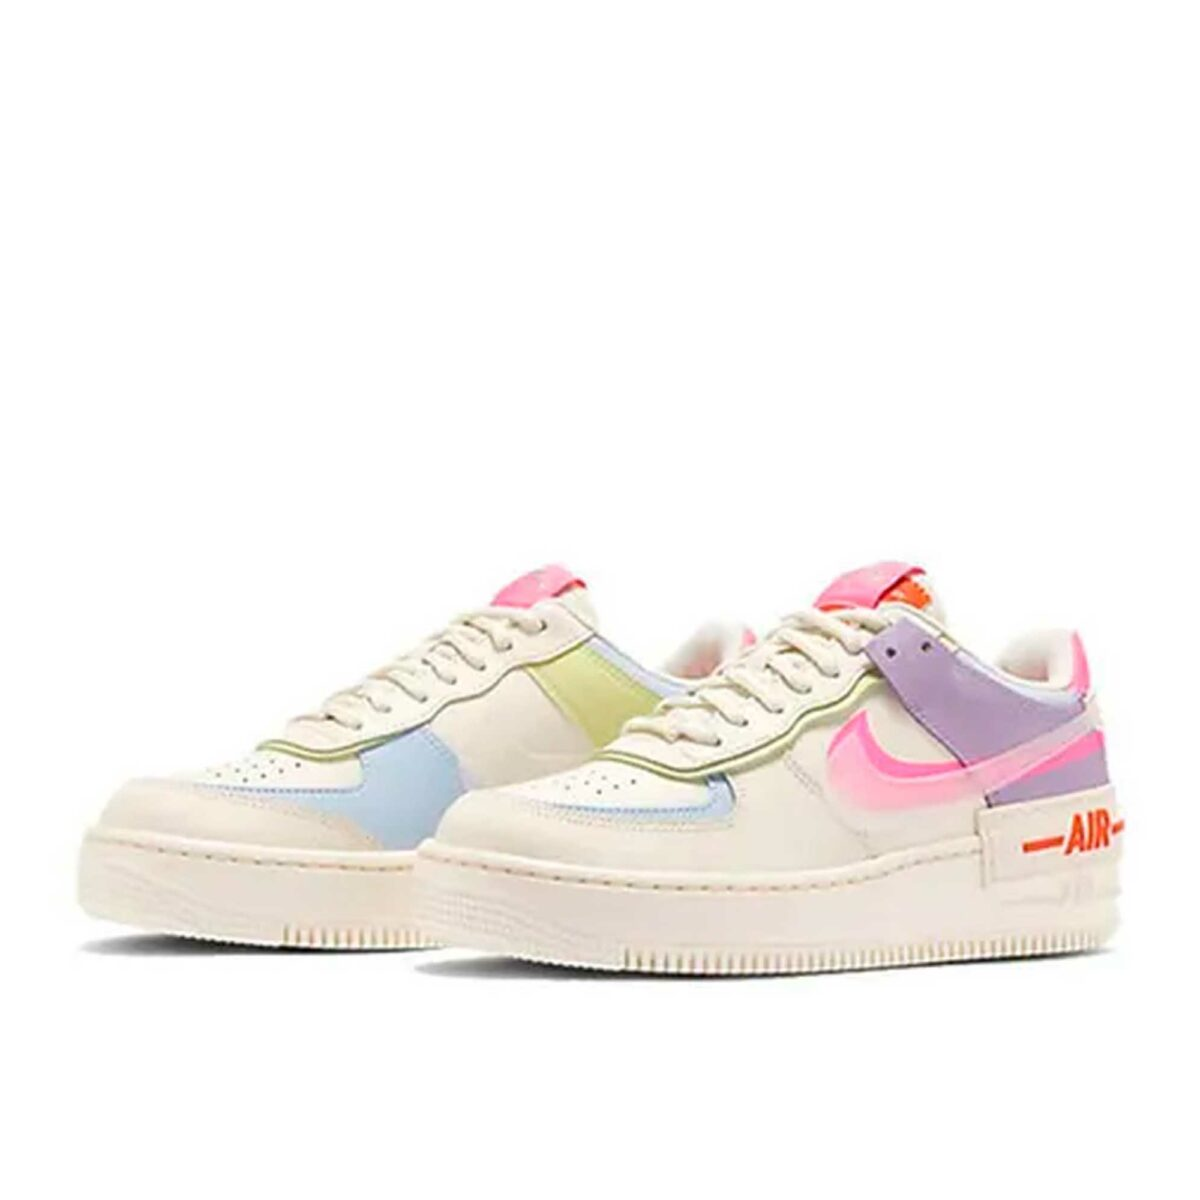 nike air force 1 shadow double swoosh sail pink purple CT7358_500 купить